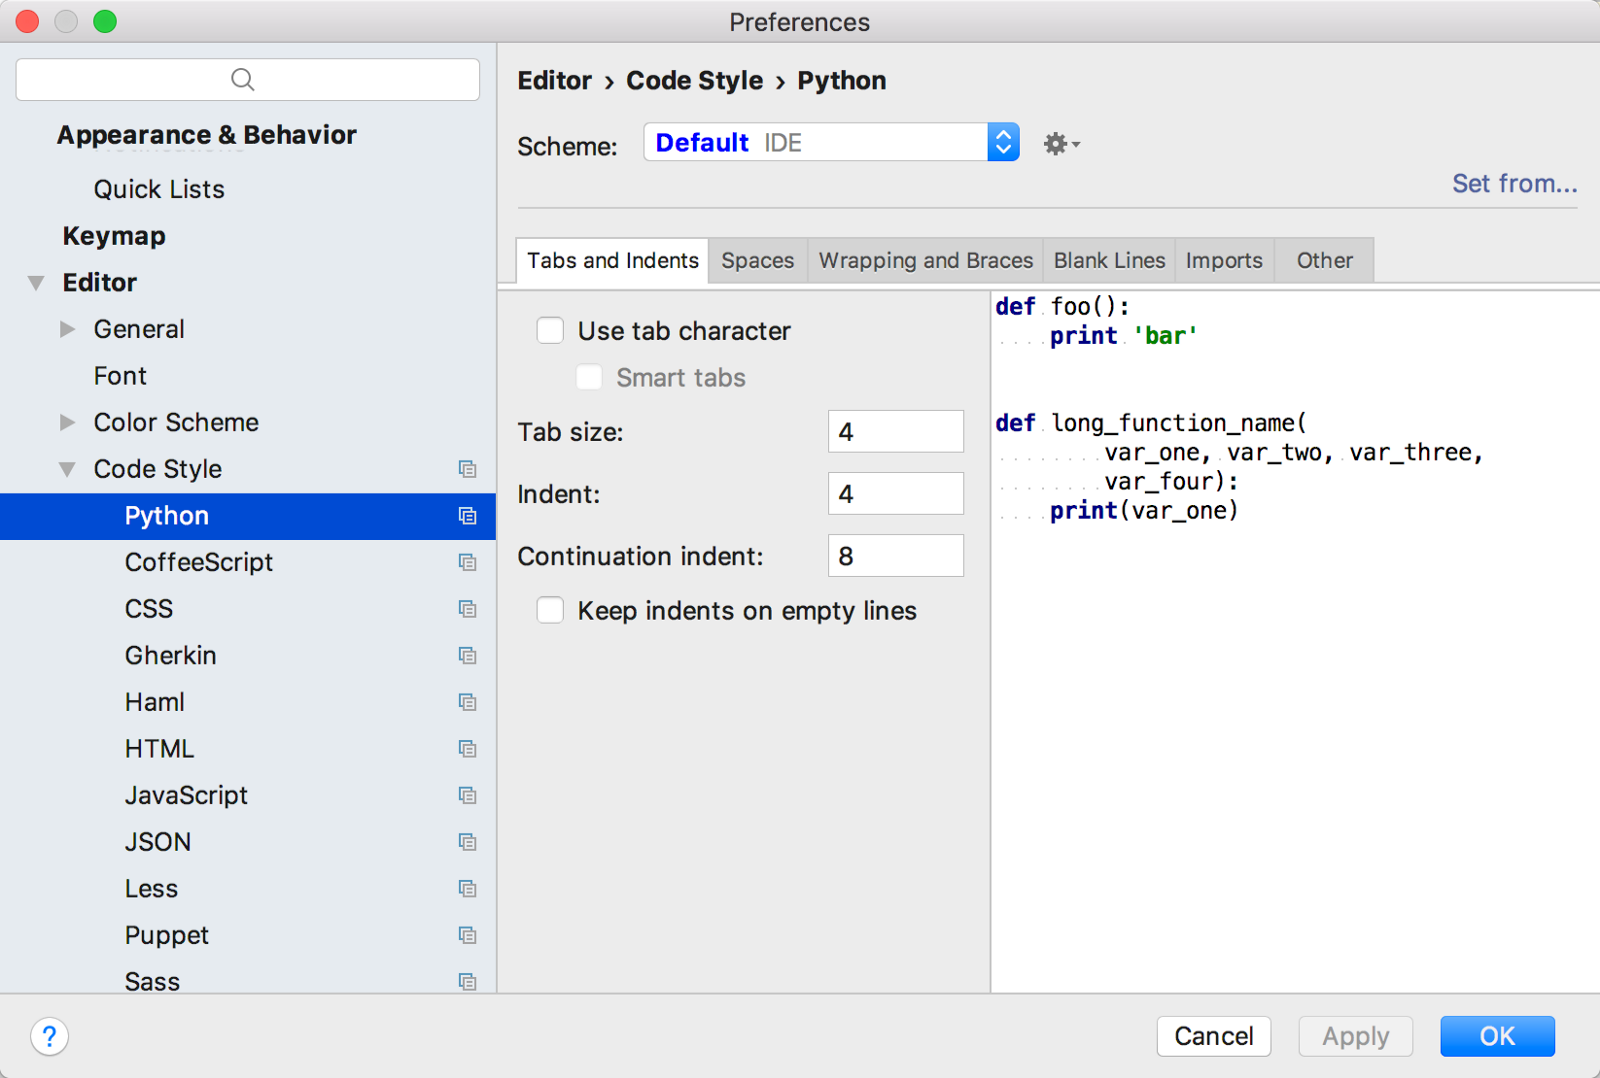 Learn python step by step beginner 01 tarun sharma medium code style can be defined for each language under file settings editor code style pycharm preferences editor code style for macos users ccuart Image collections